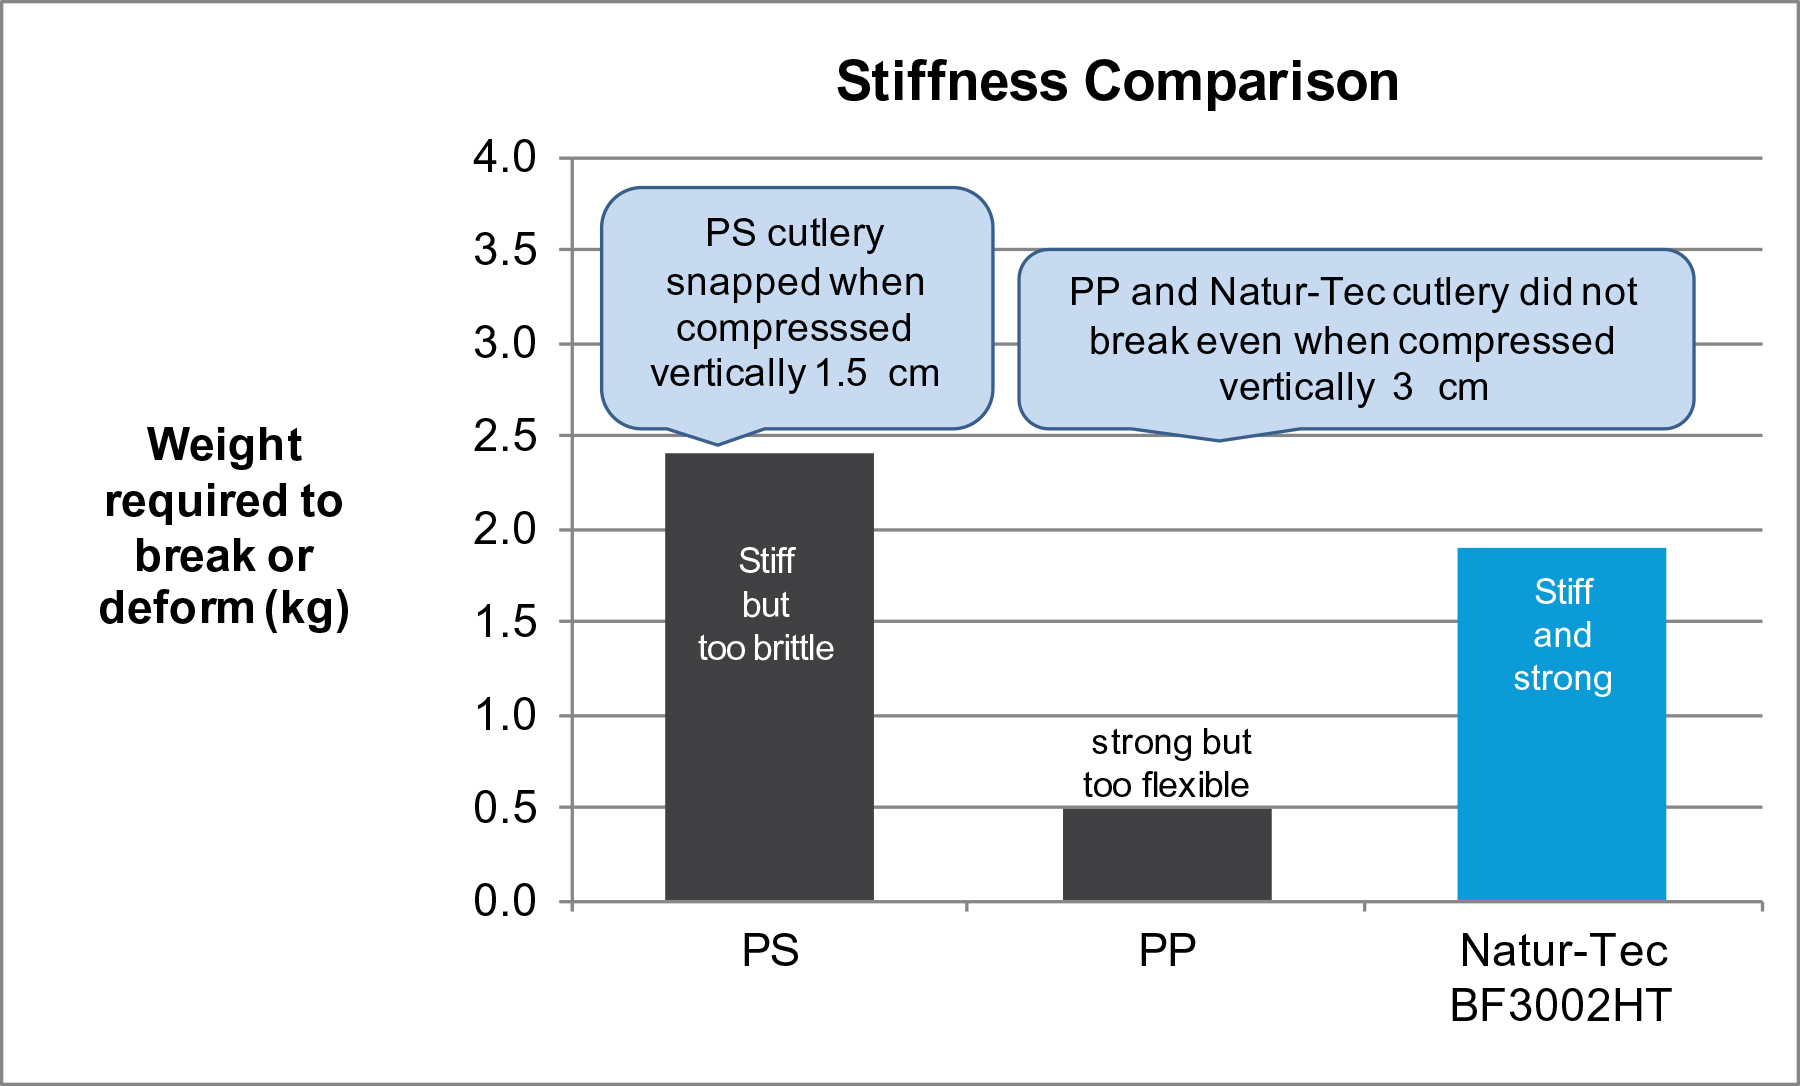 Figure 1 compares the stiffness of cutlery made from the new formulation with PS and PP cutlery. PS cutlery is typically stiff but too brittle, while PP cutlery is typically strong yet too flexible. In contrast, the new Natur-Tec formulation is both stiff and strong. (Graphic: Business Wire)